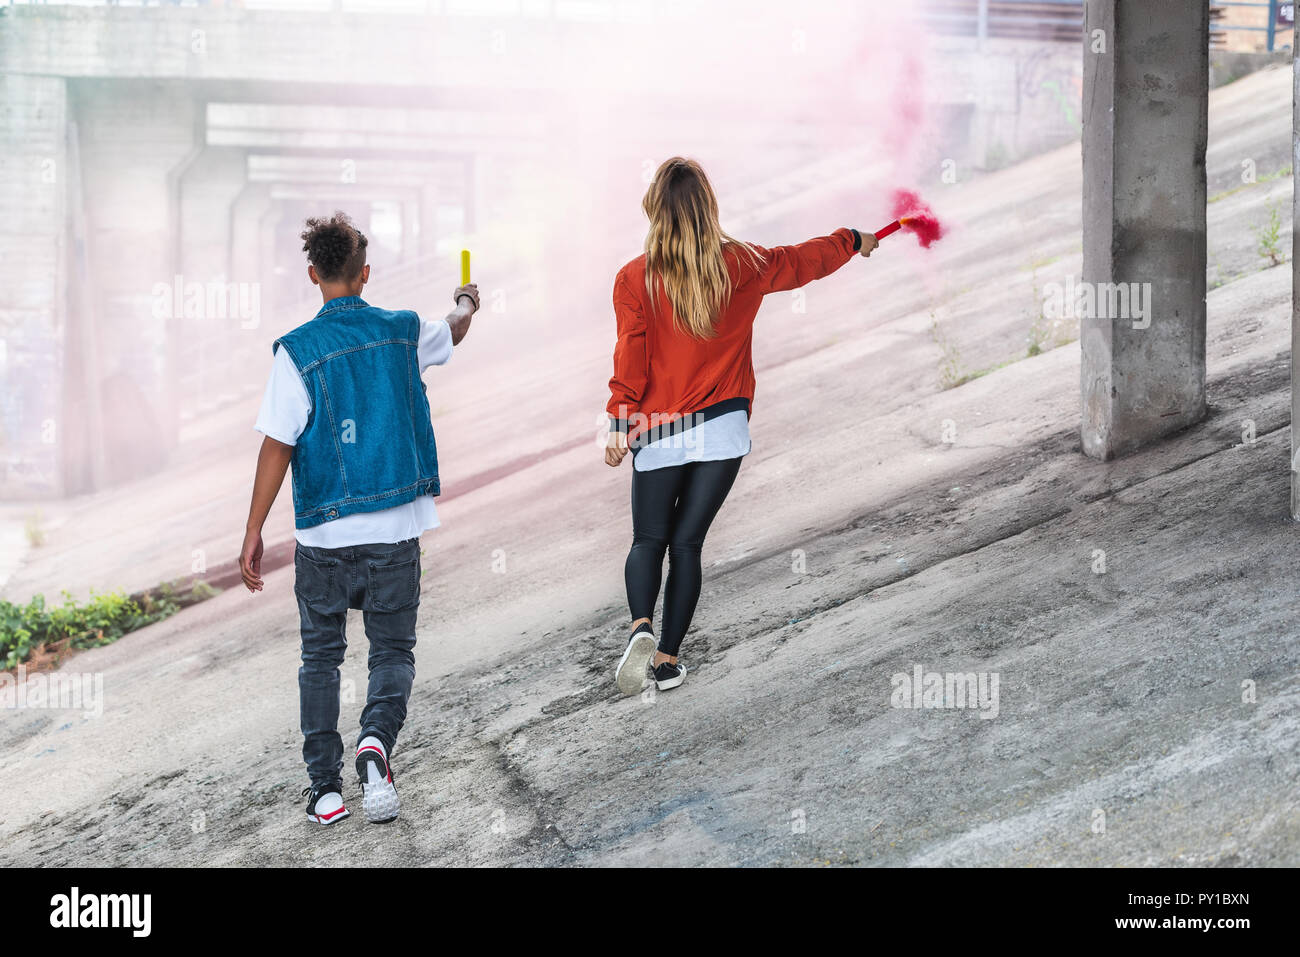 rear view of stylish couple holding colorful smoke bombs at city street - Stock Image